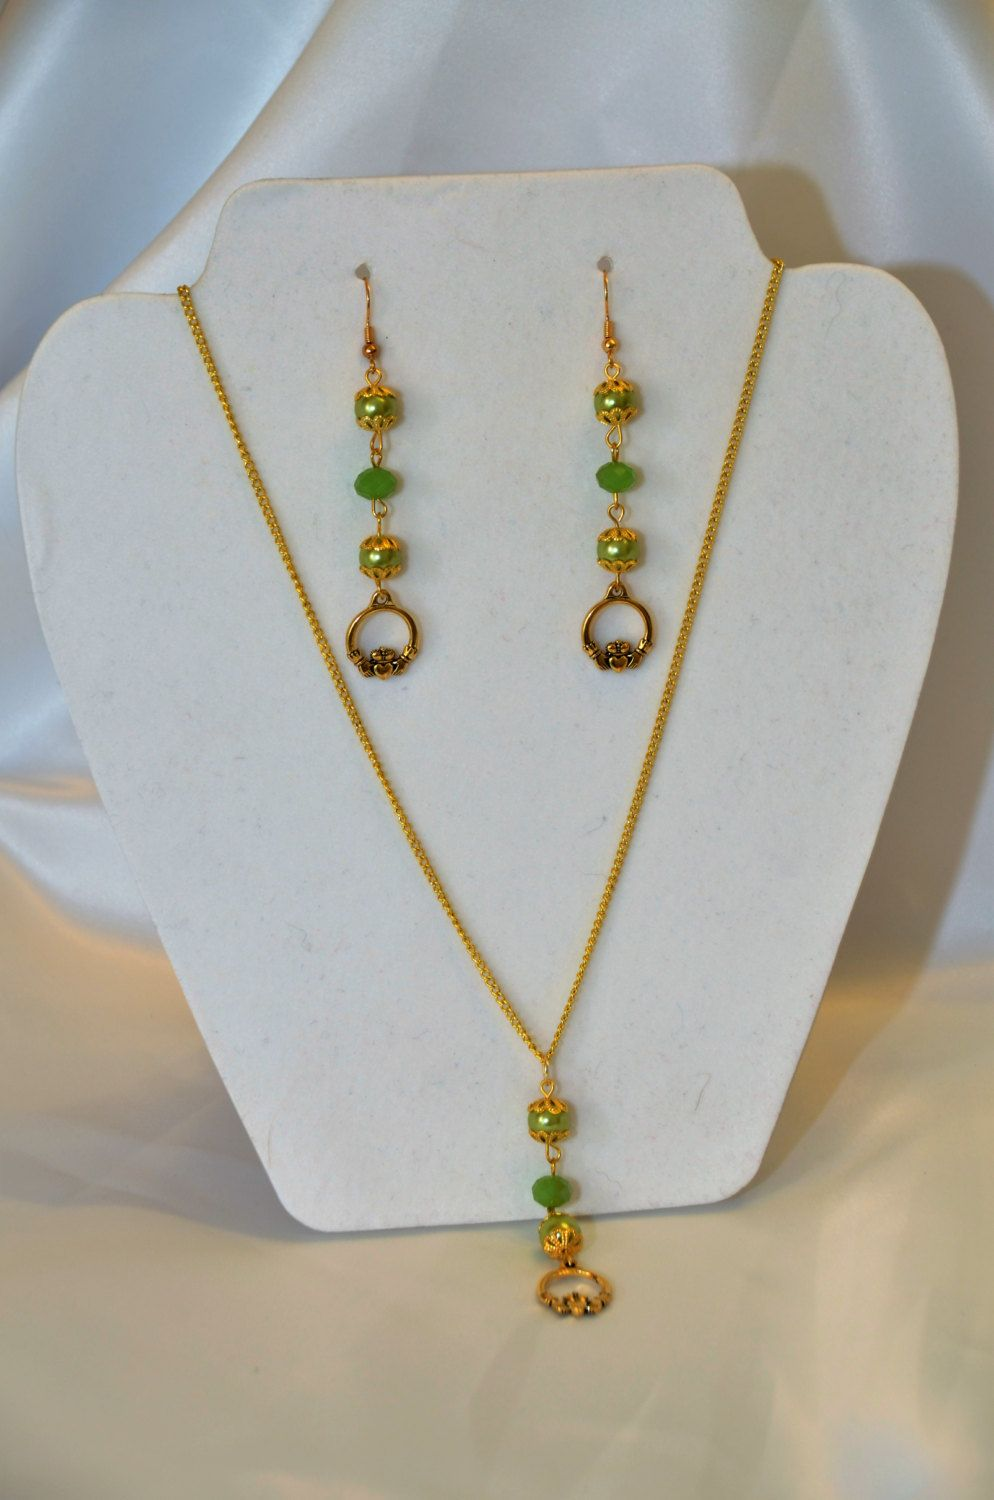 Handmade Green  Brass /Gold  Claddagh Necklace with Earring Set ~ Irish Blessing ~ Celtic Promise by DivinityBraid on Etsy